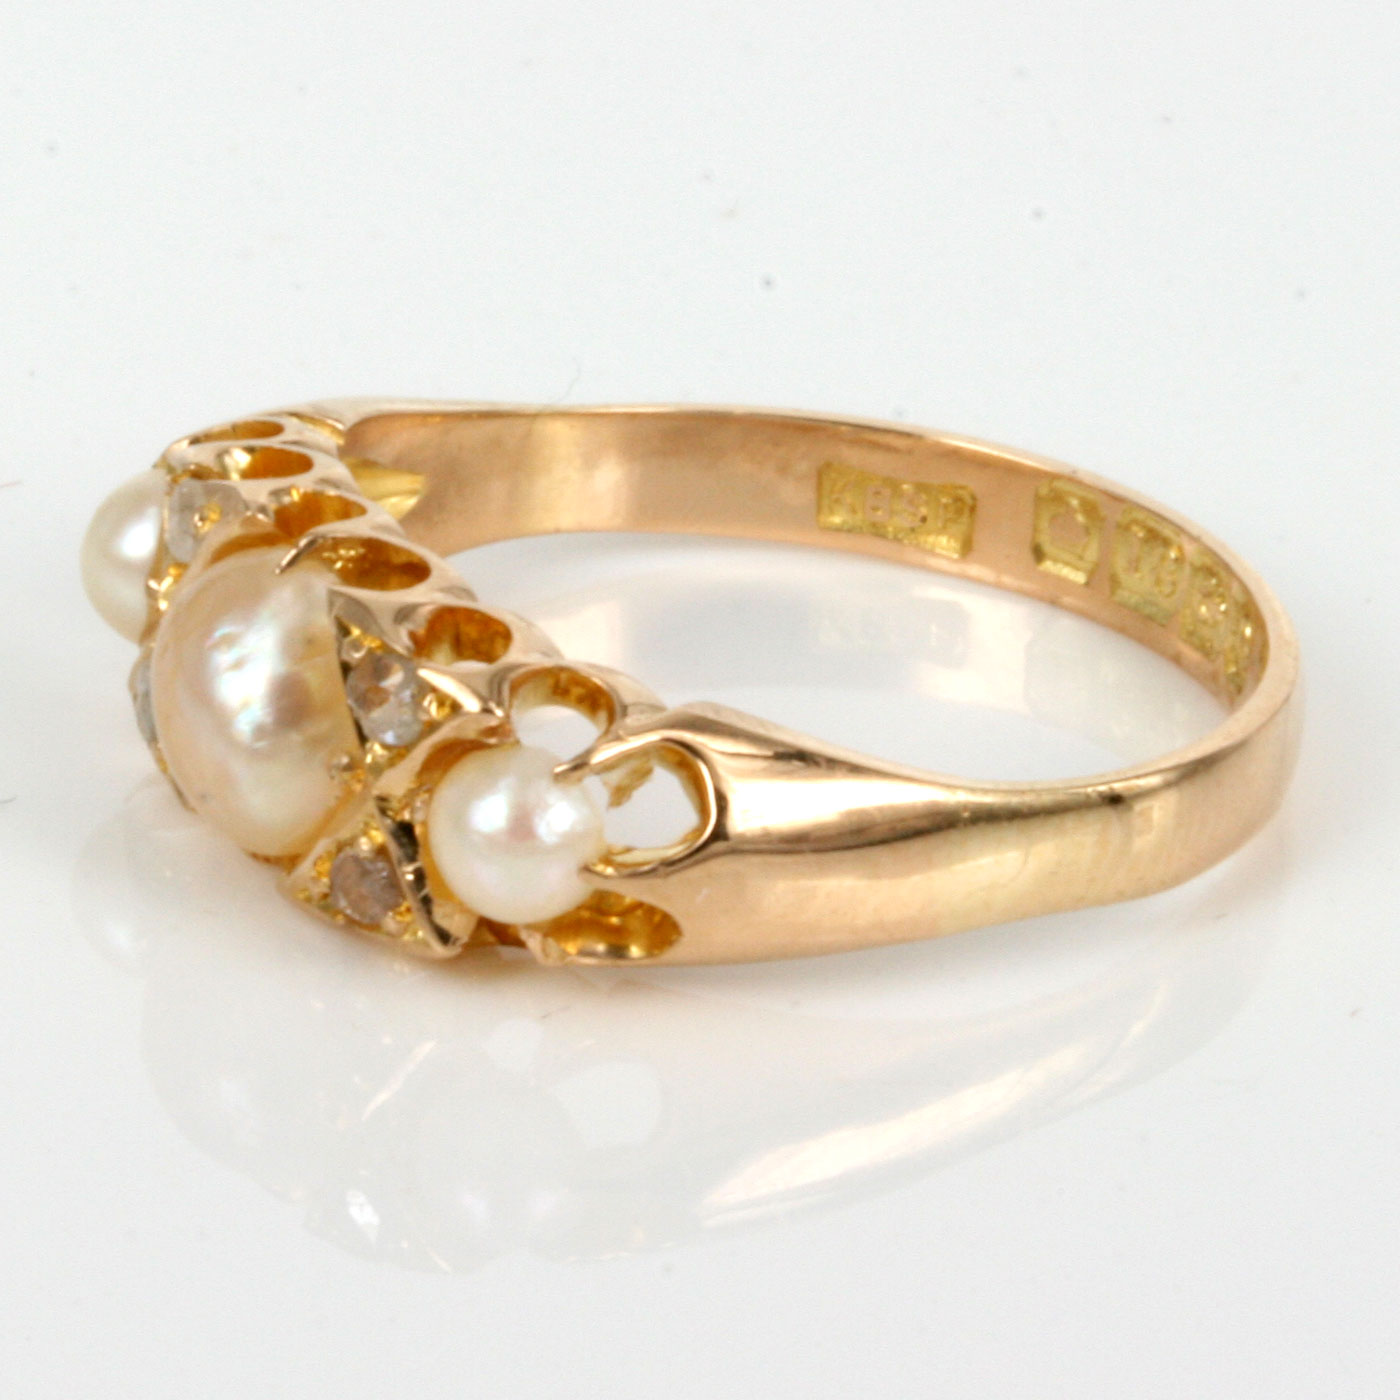 buy antique pearl diamond ring made in 1904 sold items. Black Bedroom Furniture Sets. Home Design Ideas